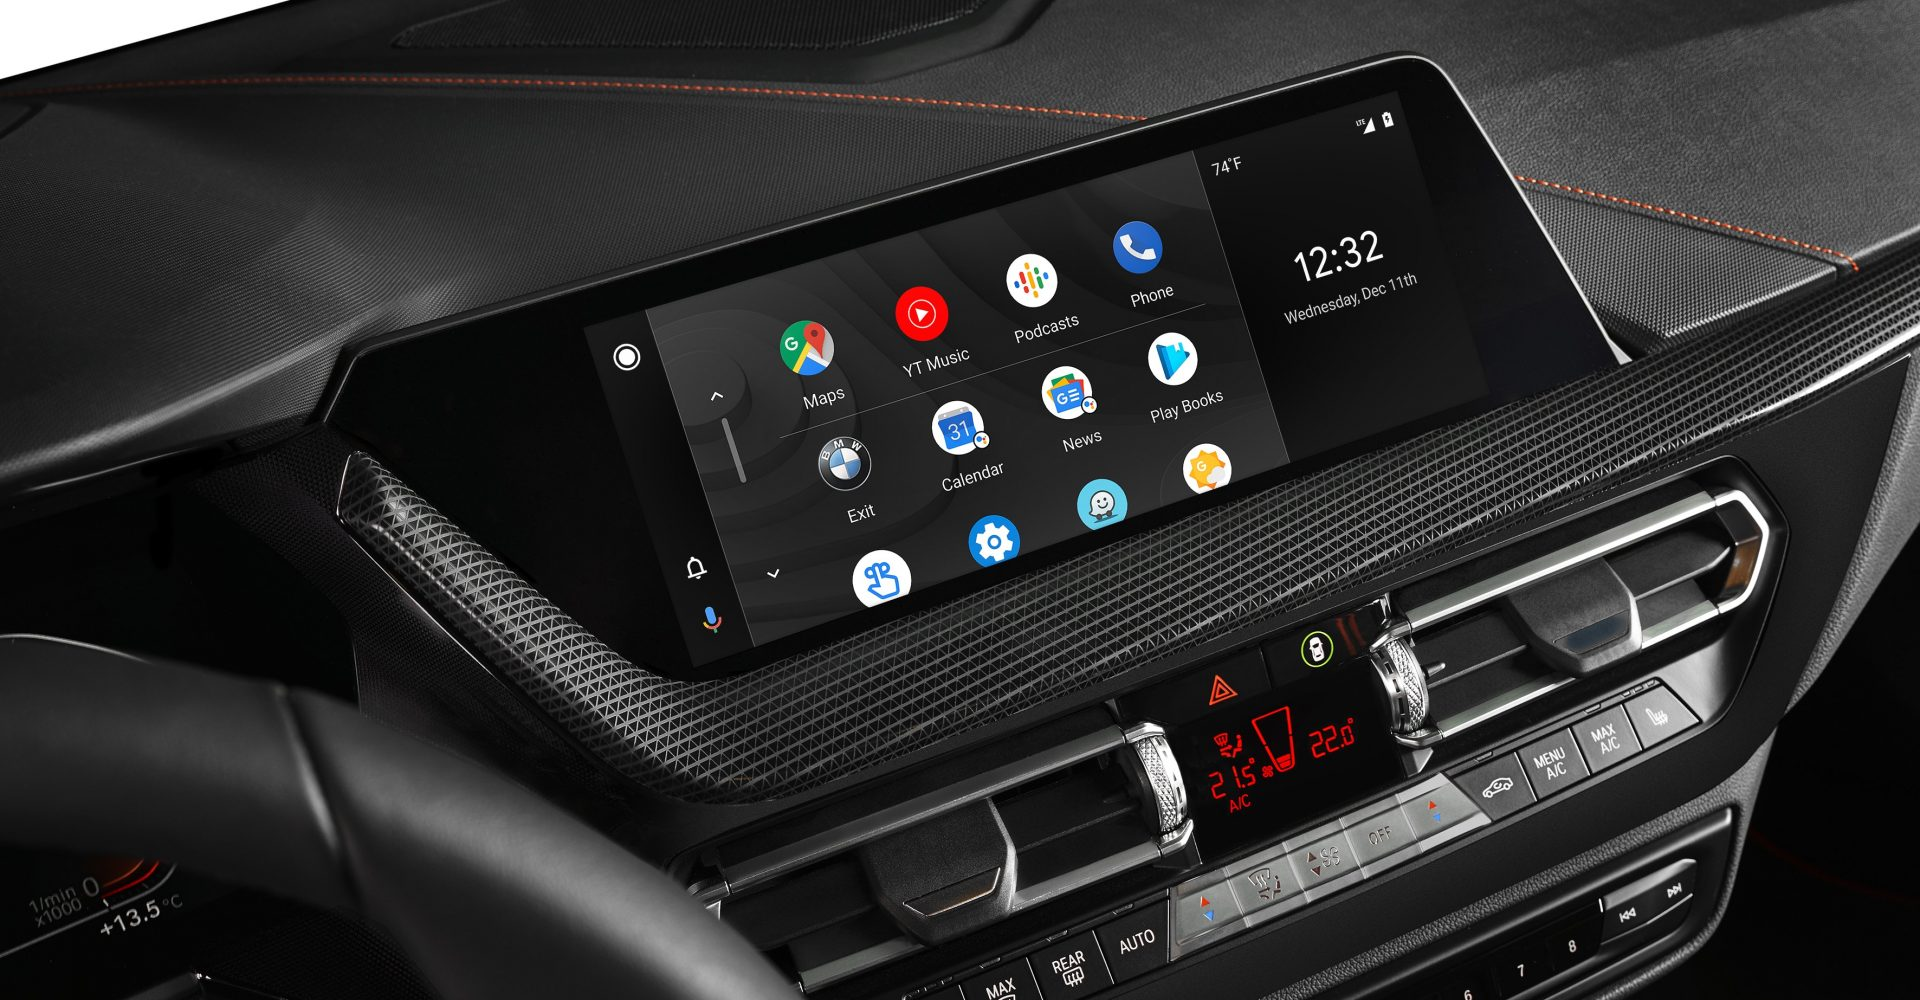 Android Auto is coming to BMWs next year